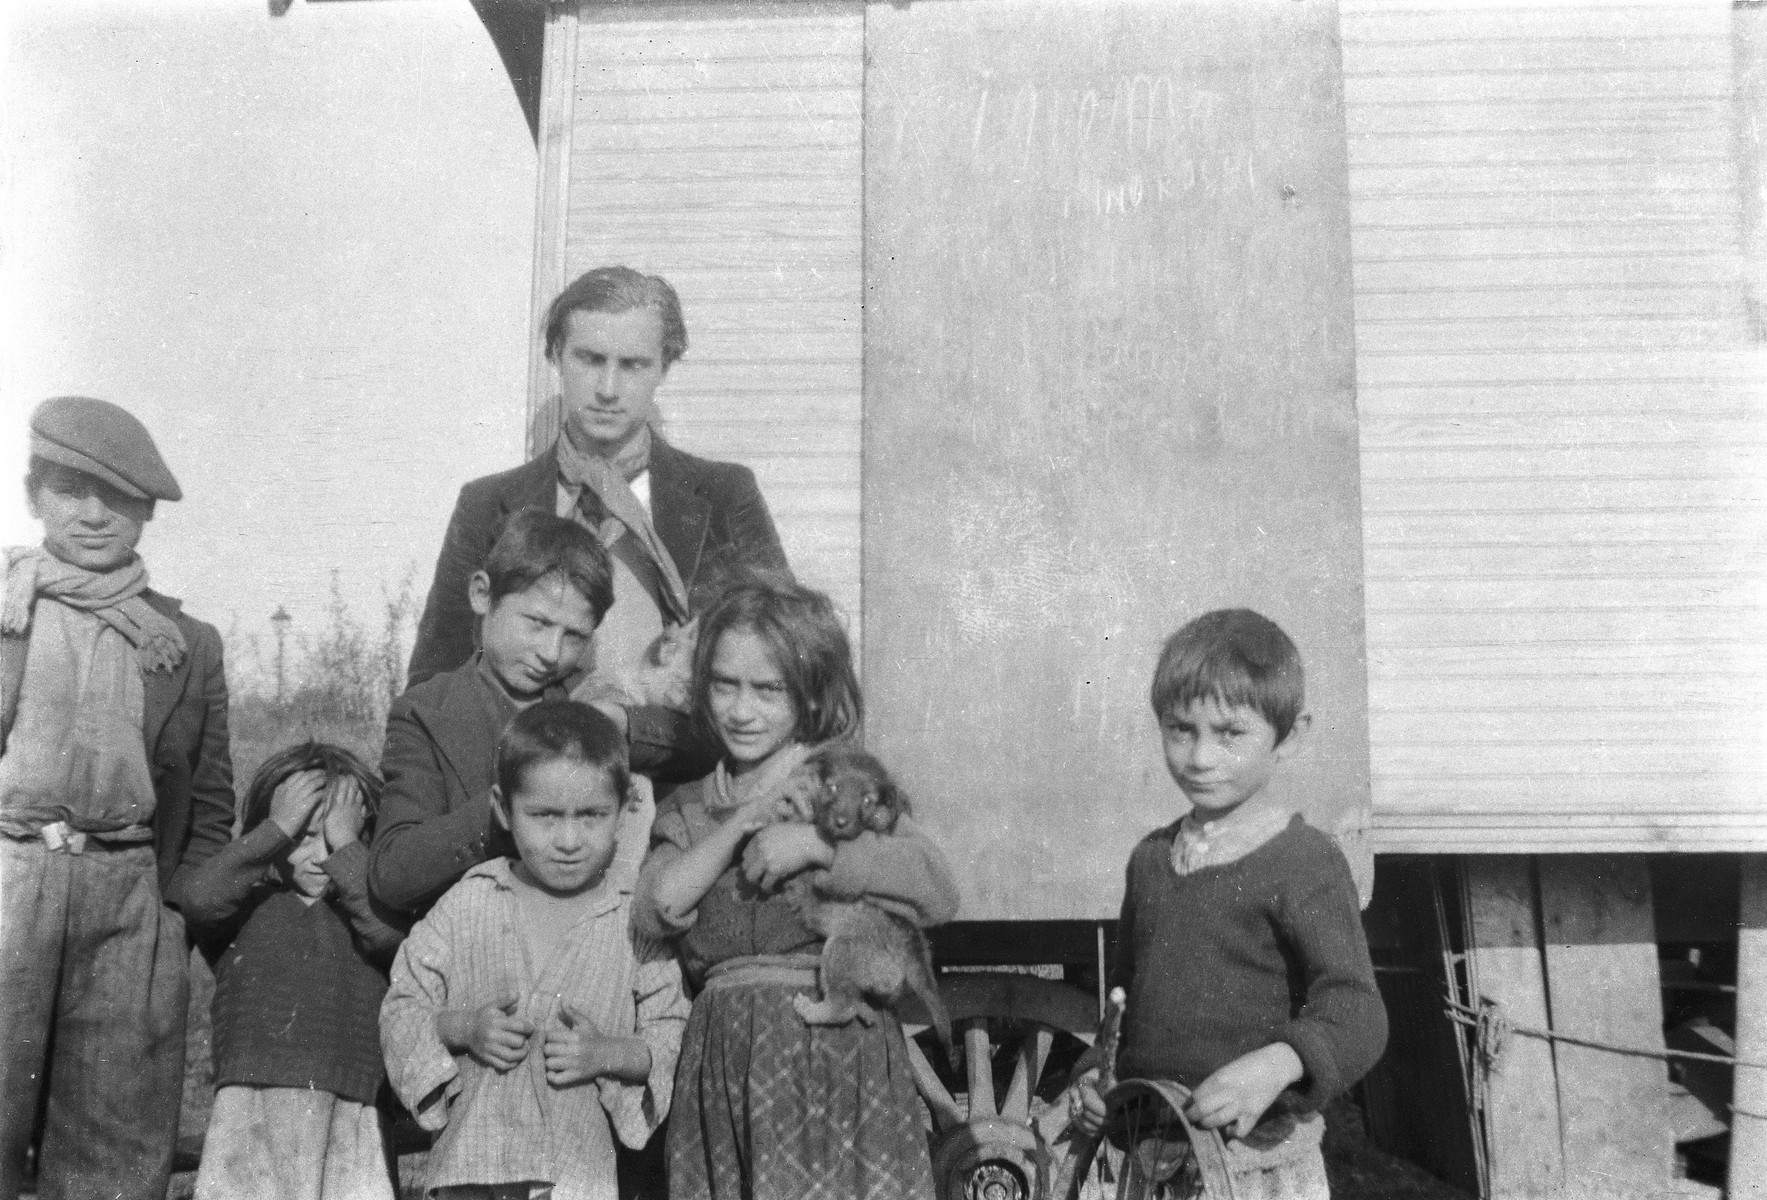 A group of Roma (Gypsy) children pose for a photograph, with Jan Yoors in center back.